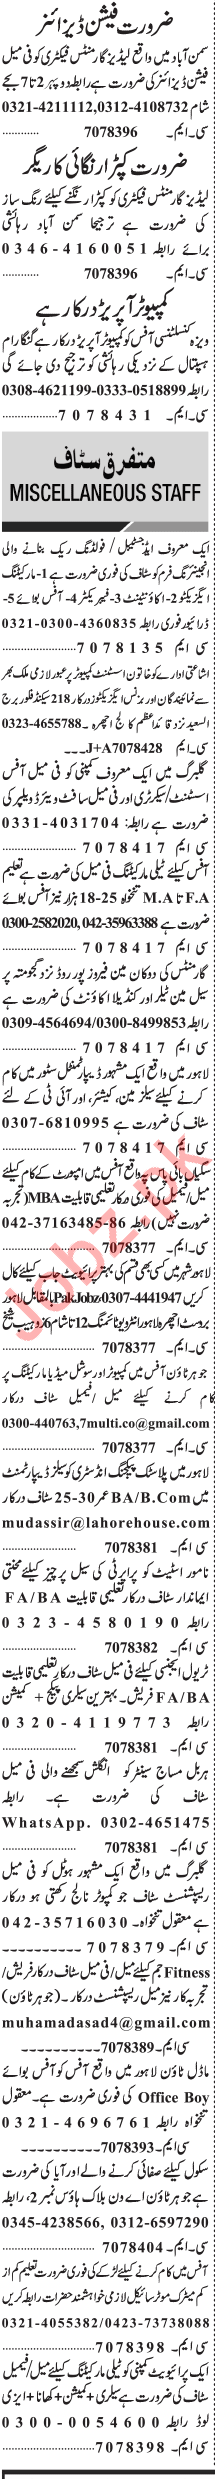 Jang Sunday Classified Ads 19 Jan 2020 for Miscellaneous